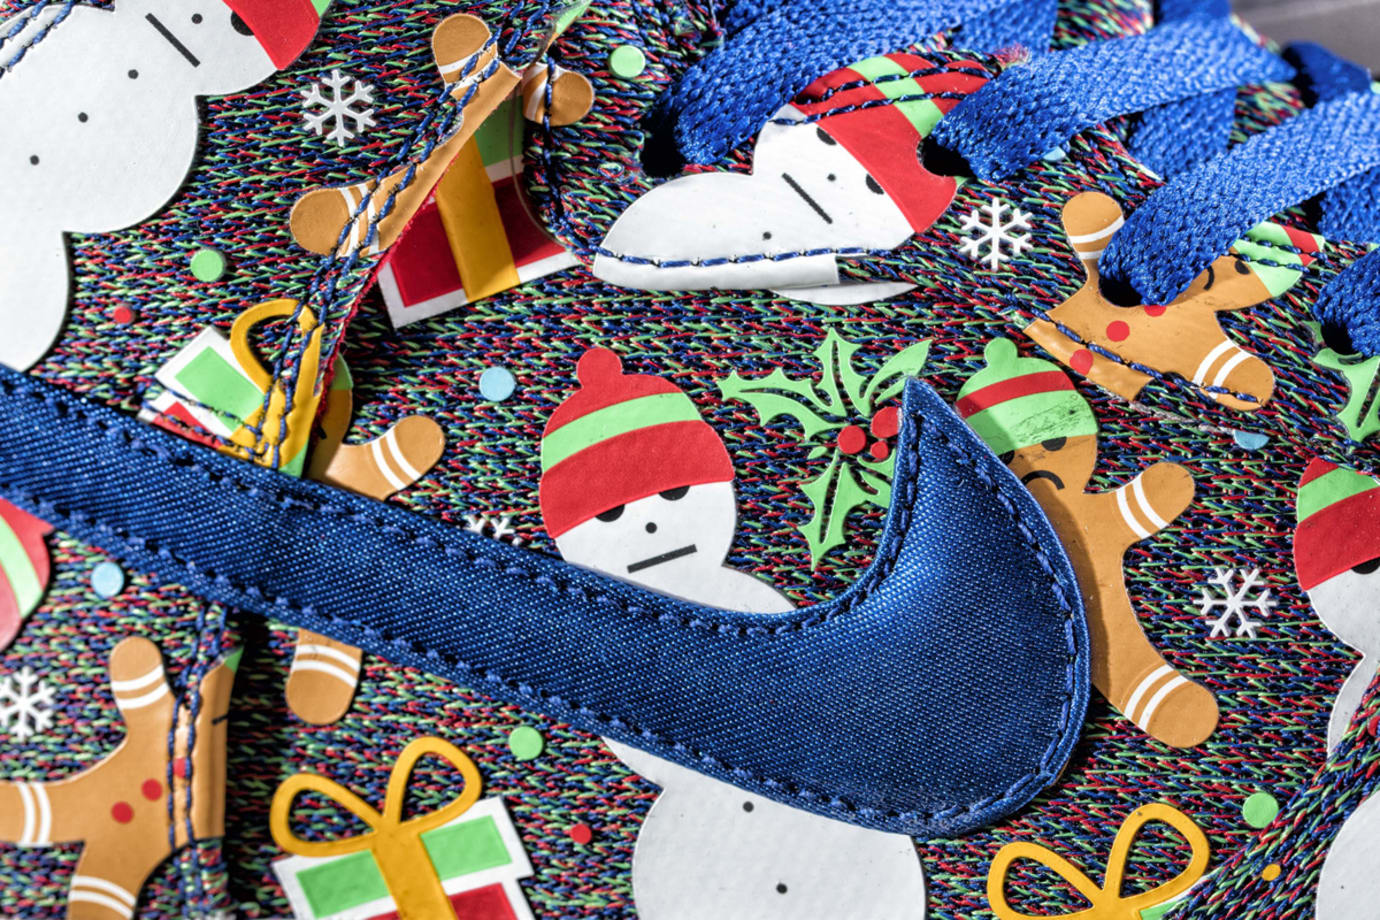 Concepts Nike SB Dunk High Ugly Christmas Sweater 2017 | Sole Collector